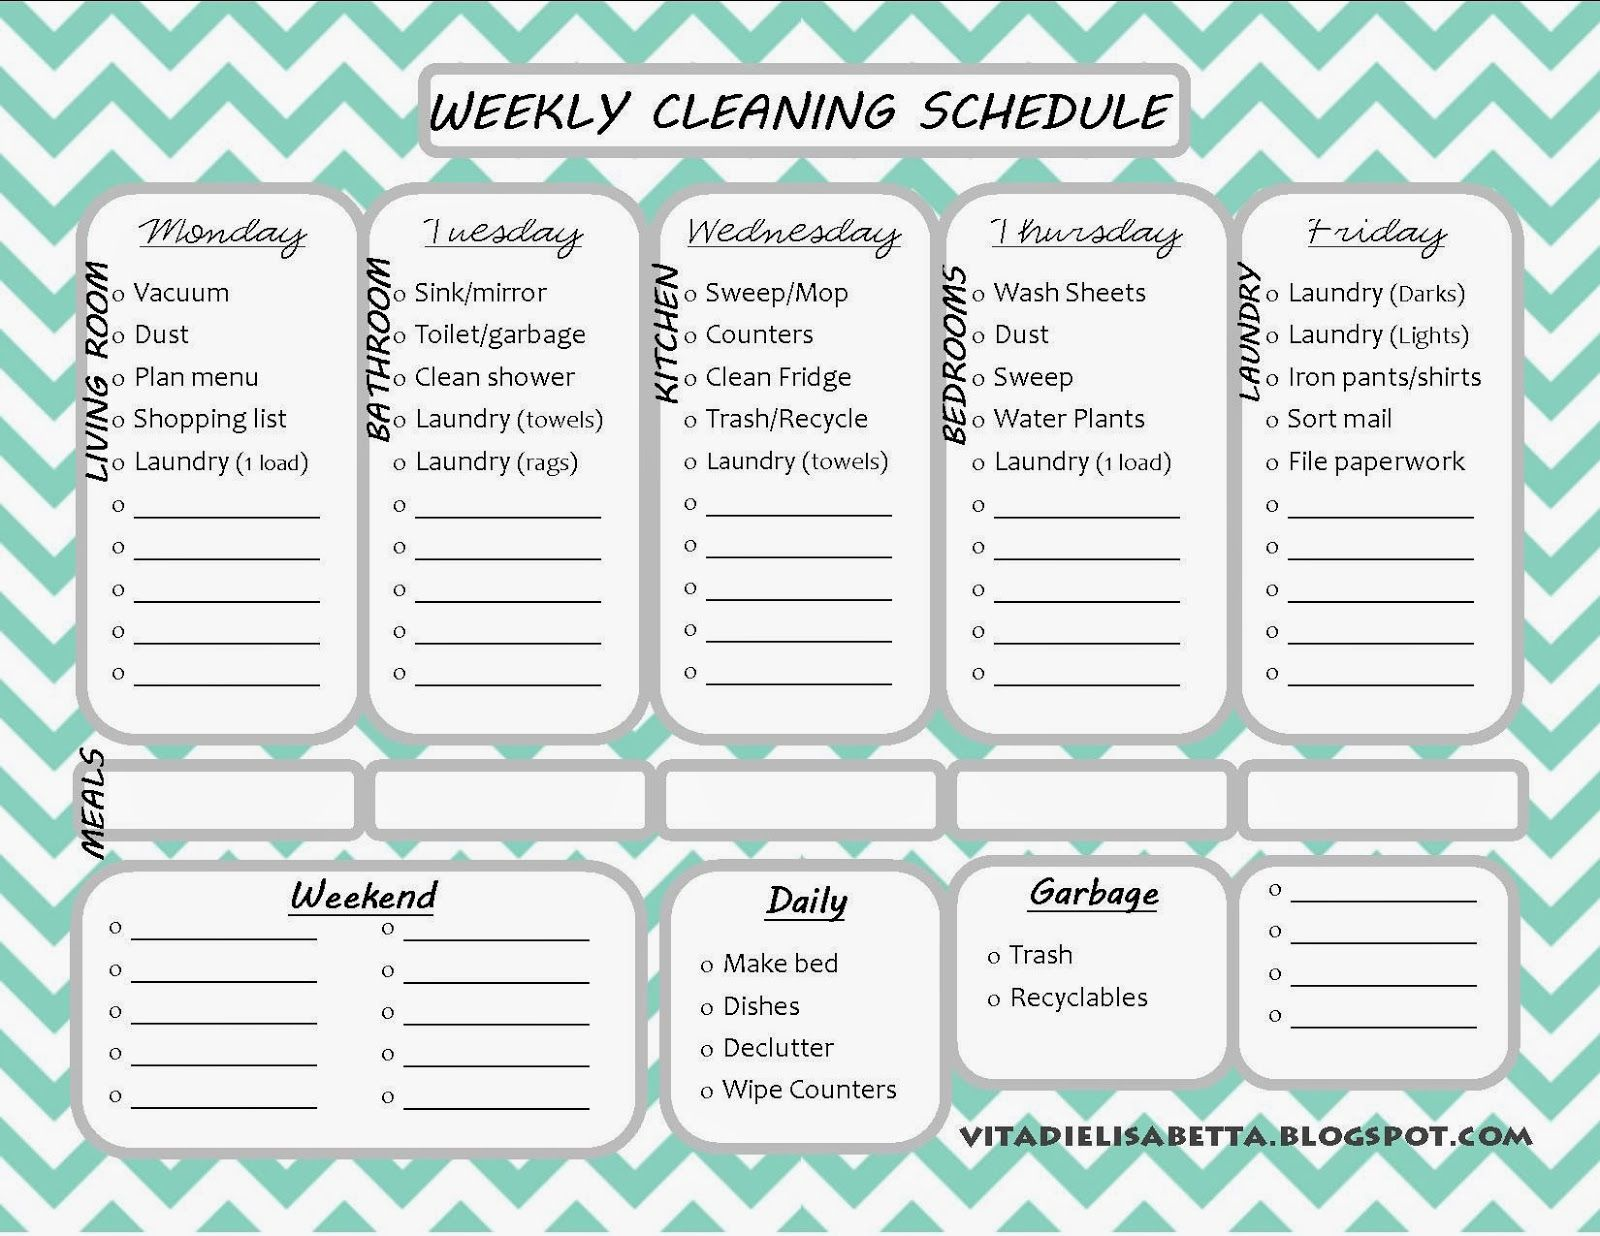 Weekly cleaning schedule printable organizing pinterest weekly cleaning schedule printable pronofoot35fo Images